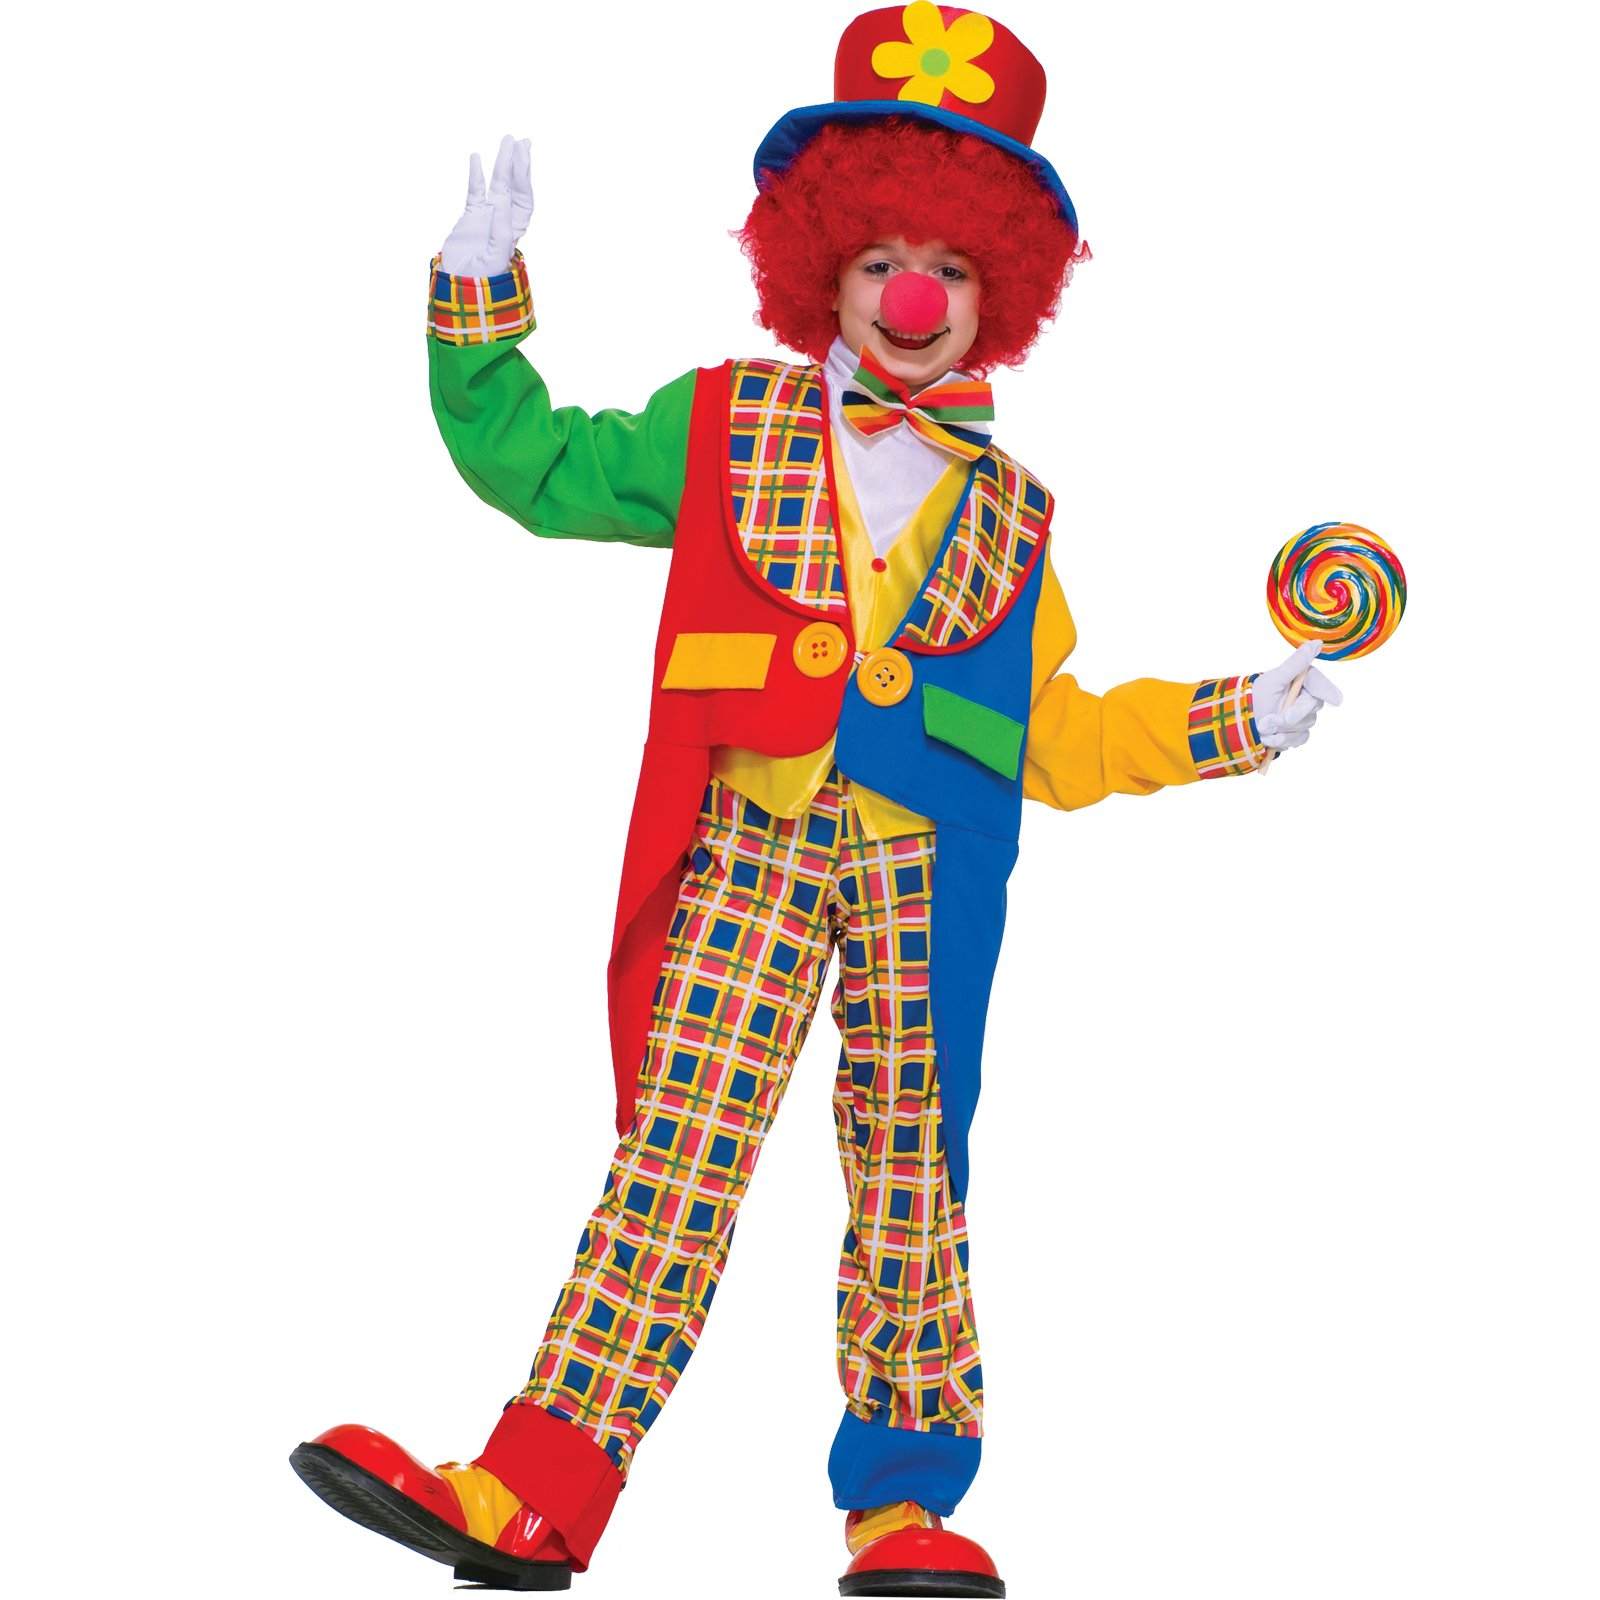 Circus Clowns Related Keywords Suggestions - Circus Clowns Long - Circus Joker Face PNG